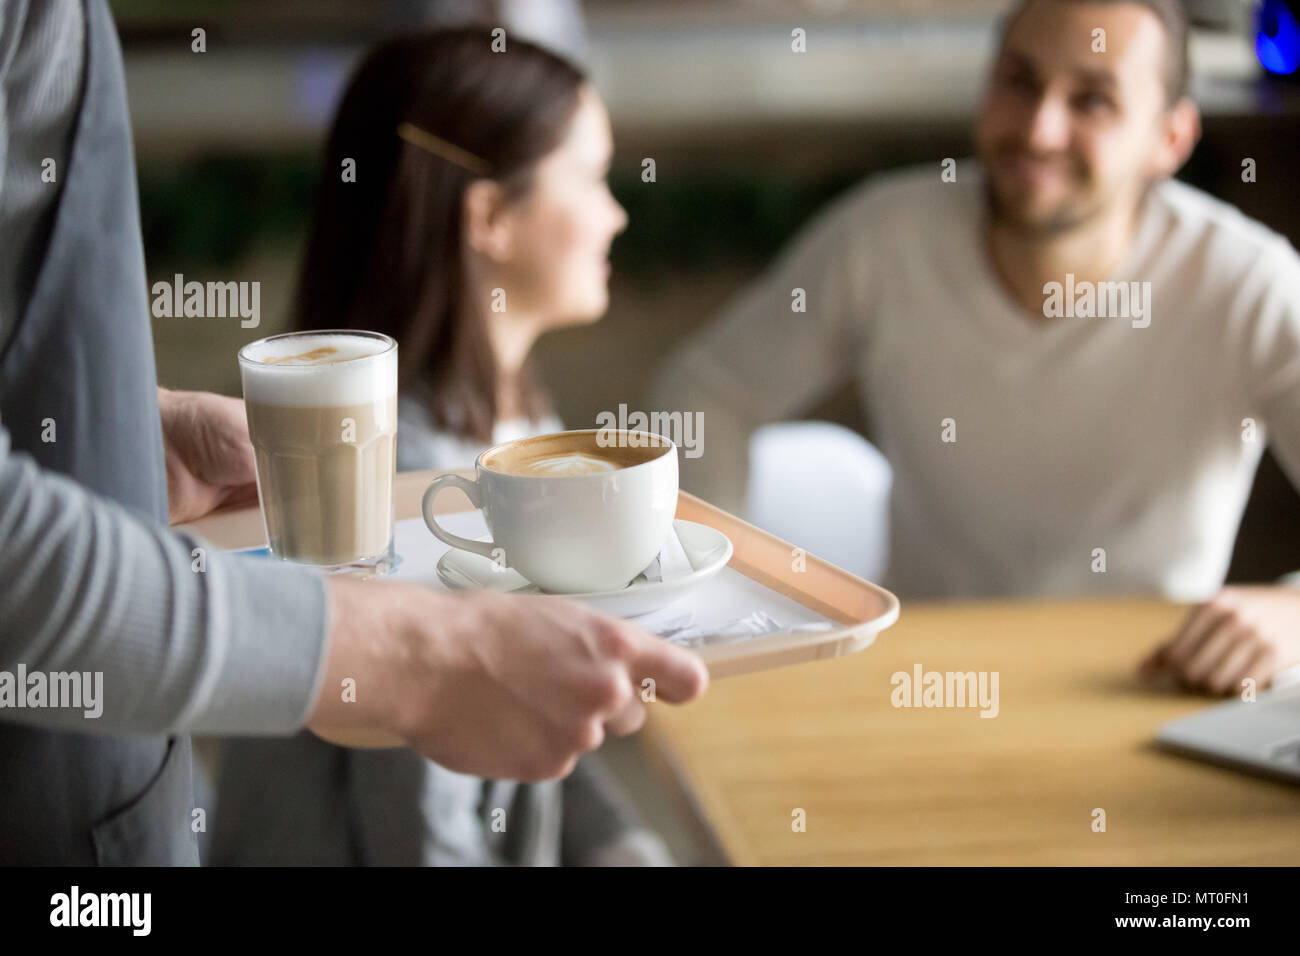 Waitress serving cappuccino and latte to couple in cafe, closeup - Stock Image